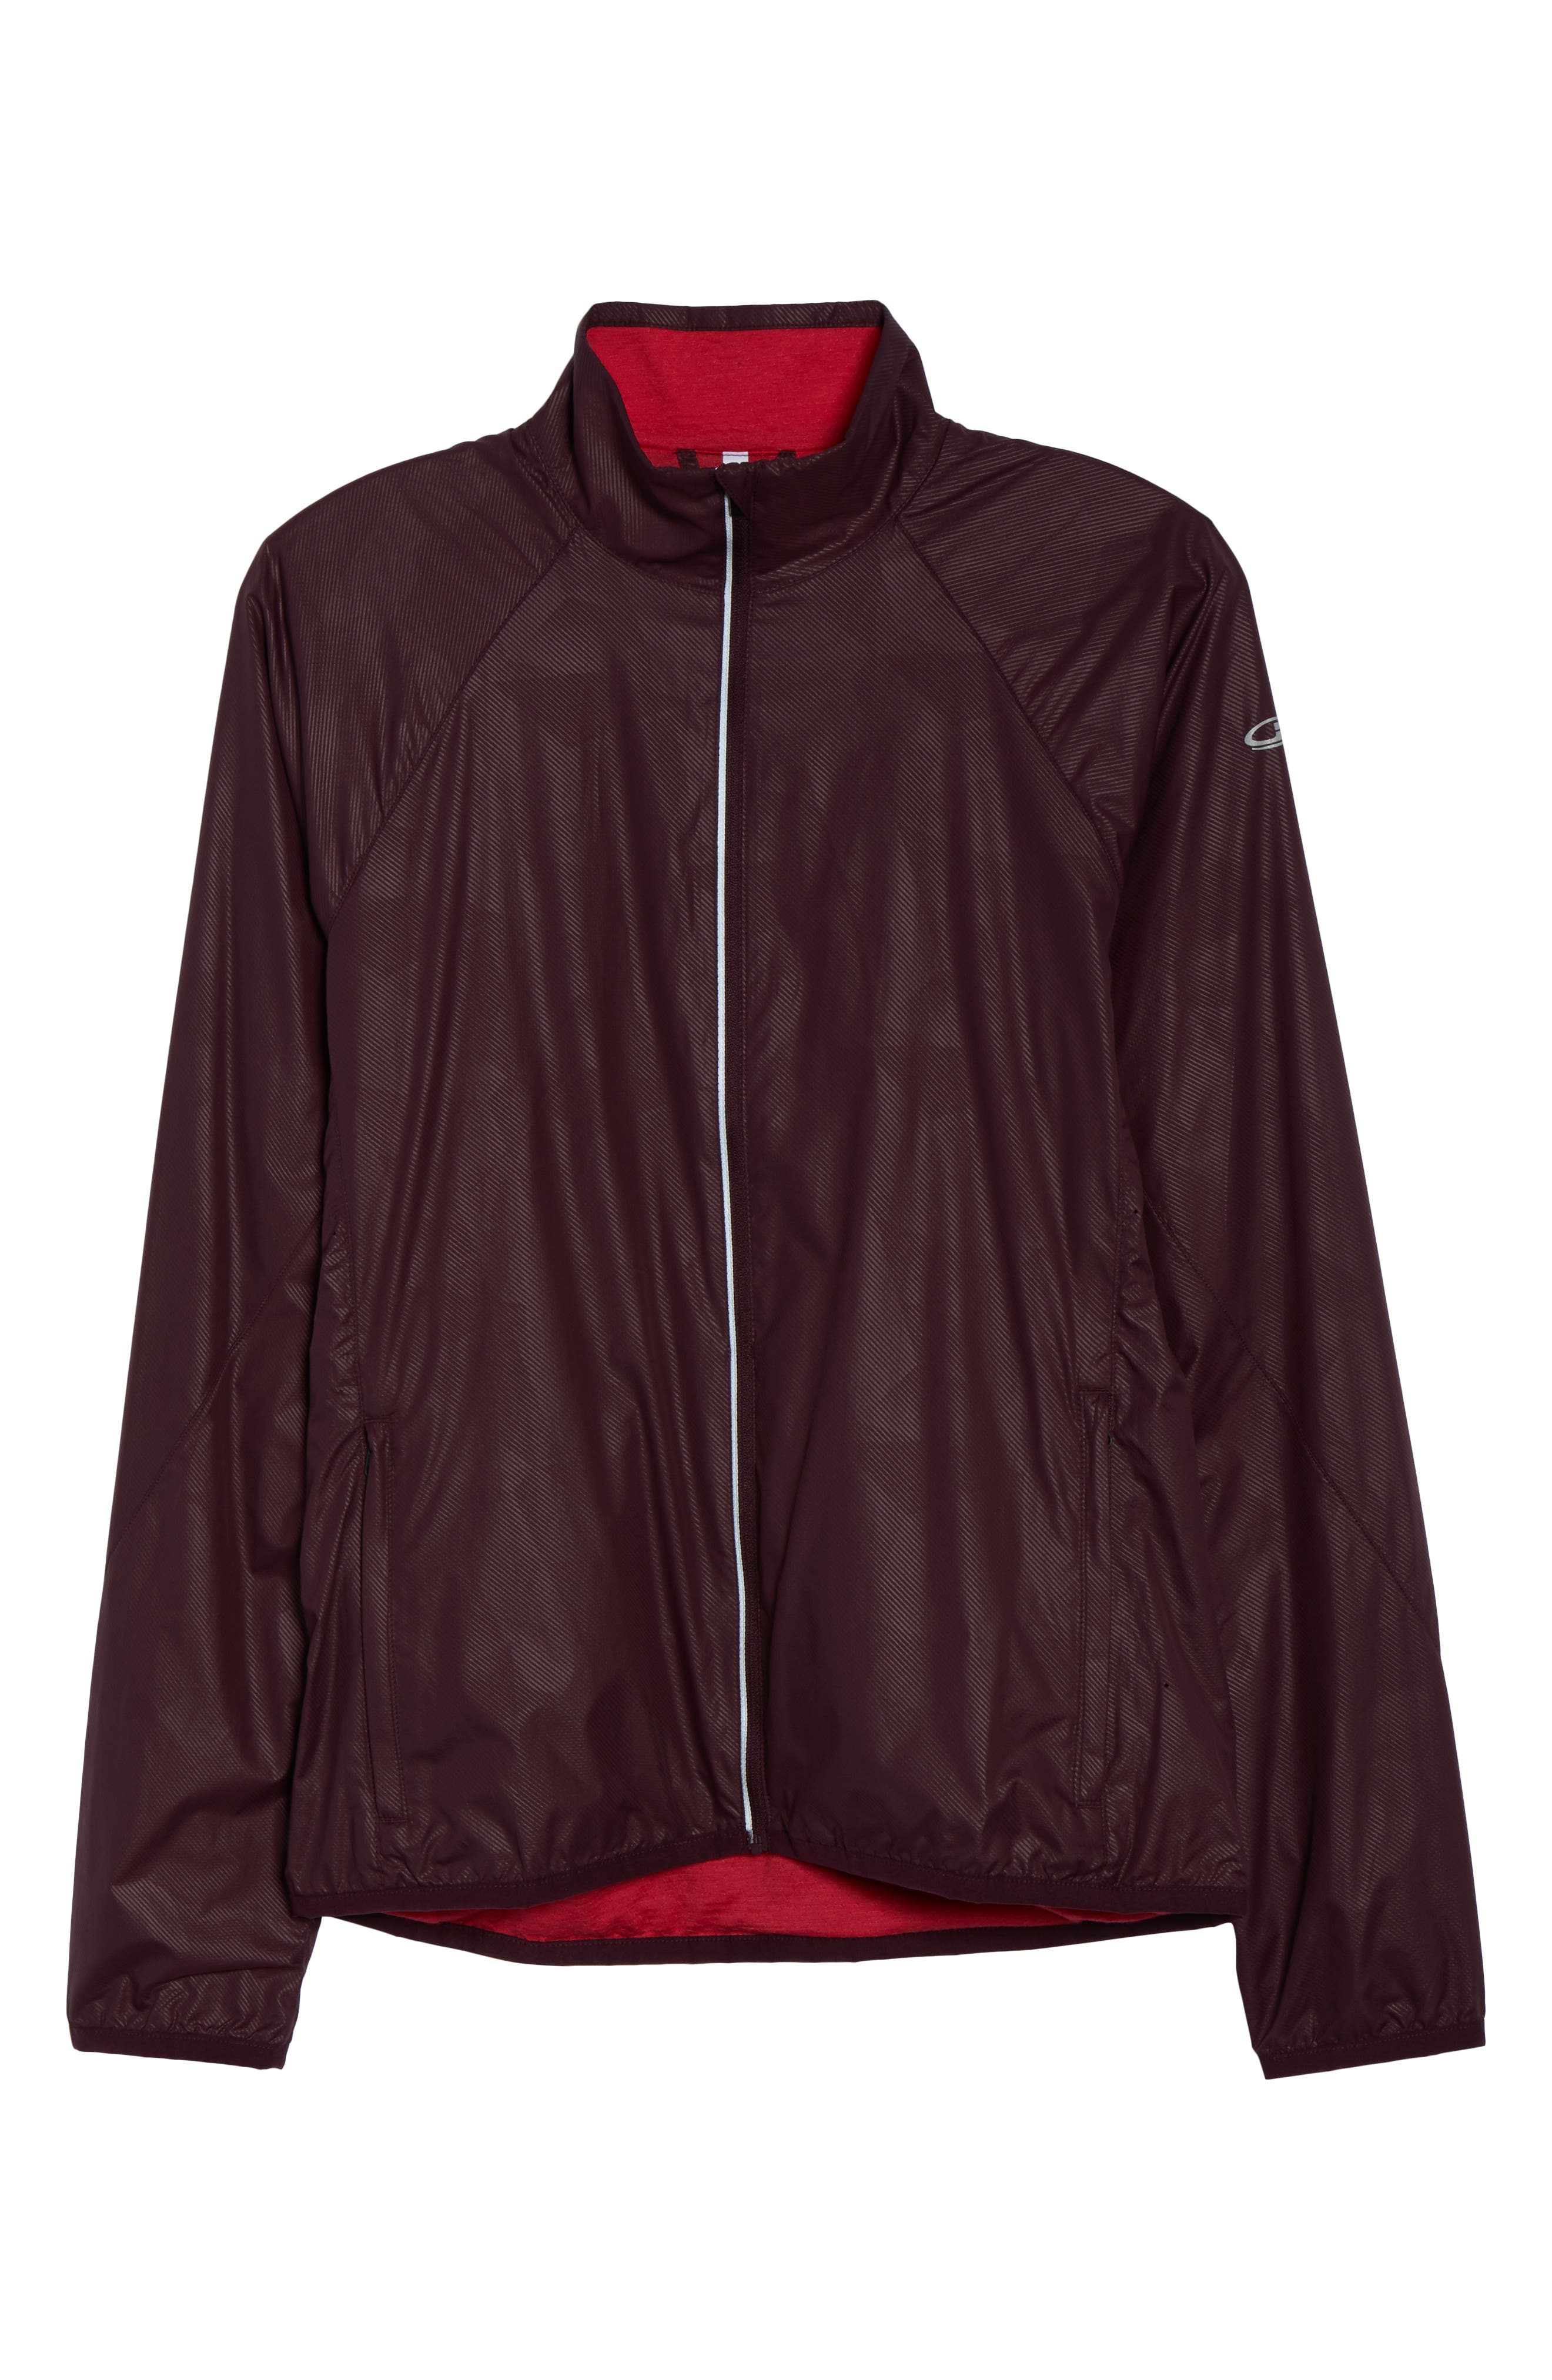 Cool-Lite<sup>™</sup> Rush Windbreaker Jacket,                             Alternate thumbnail 7, color,                             VELVET/ PRISM